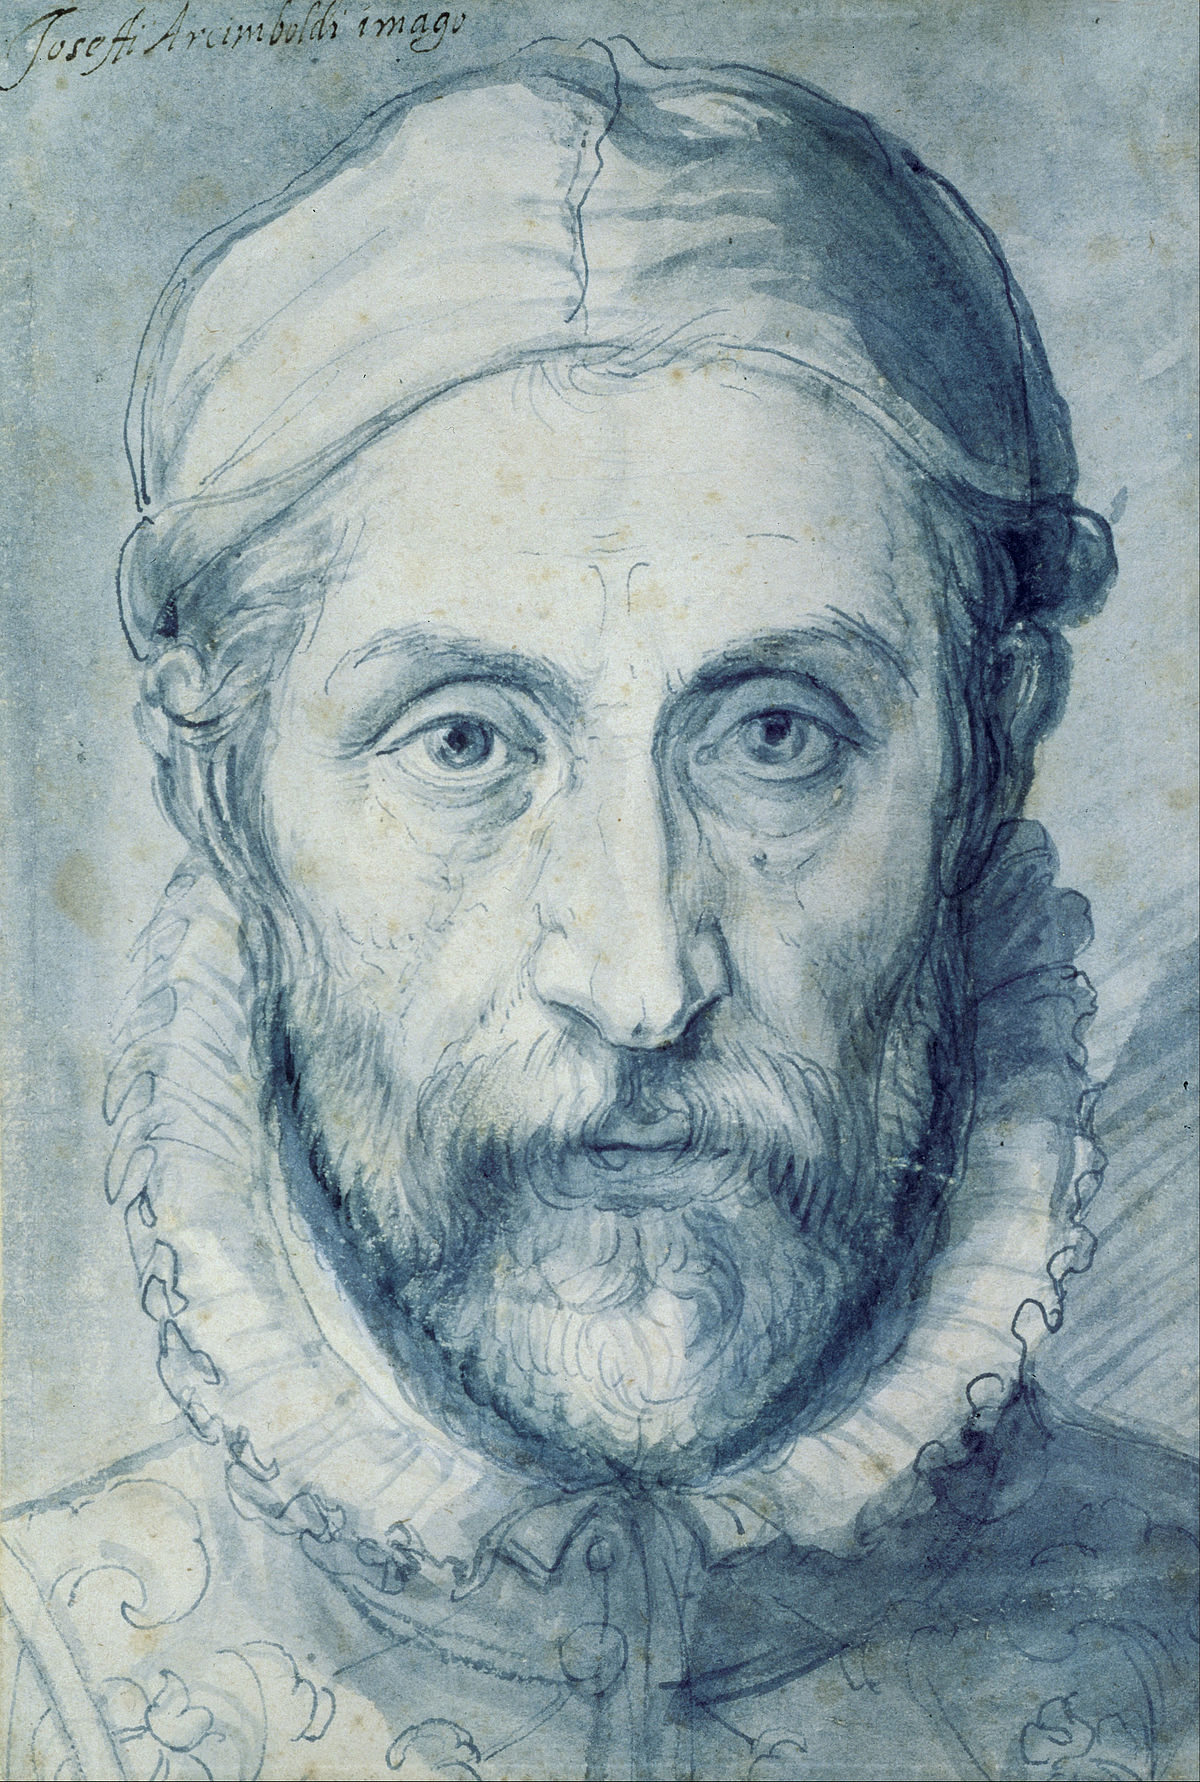 giuseppe_arcimboldo_self_portrait_google_art_project.jpg